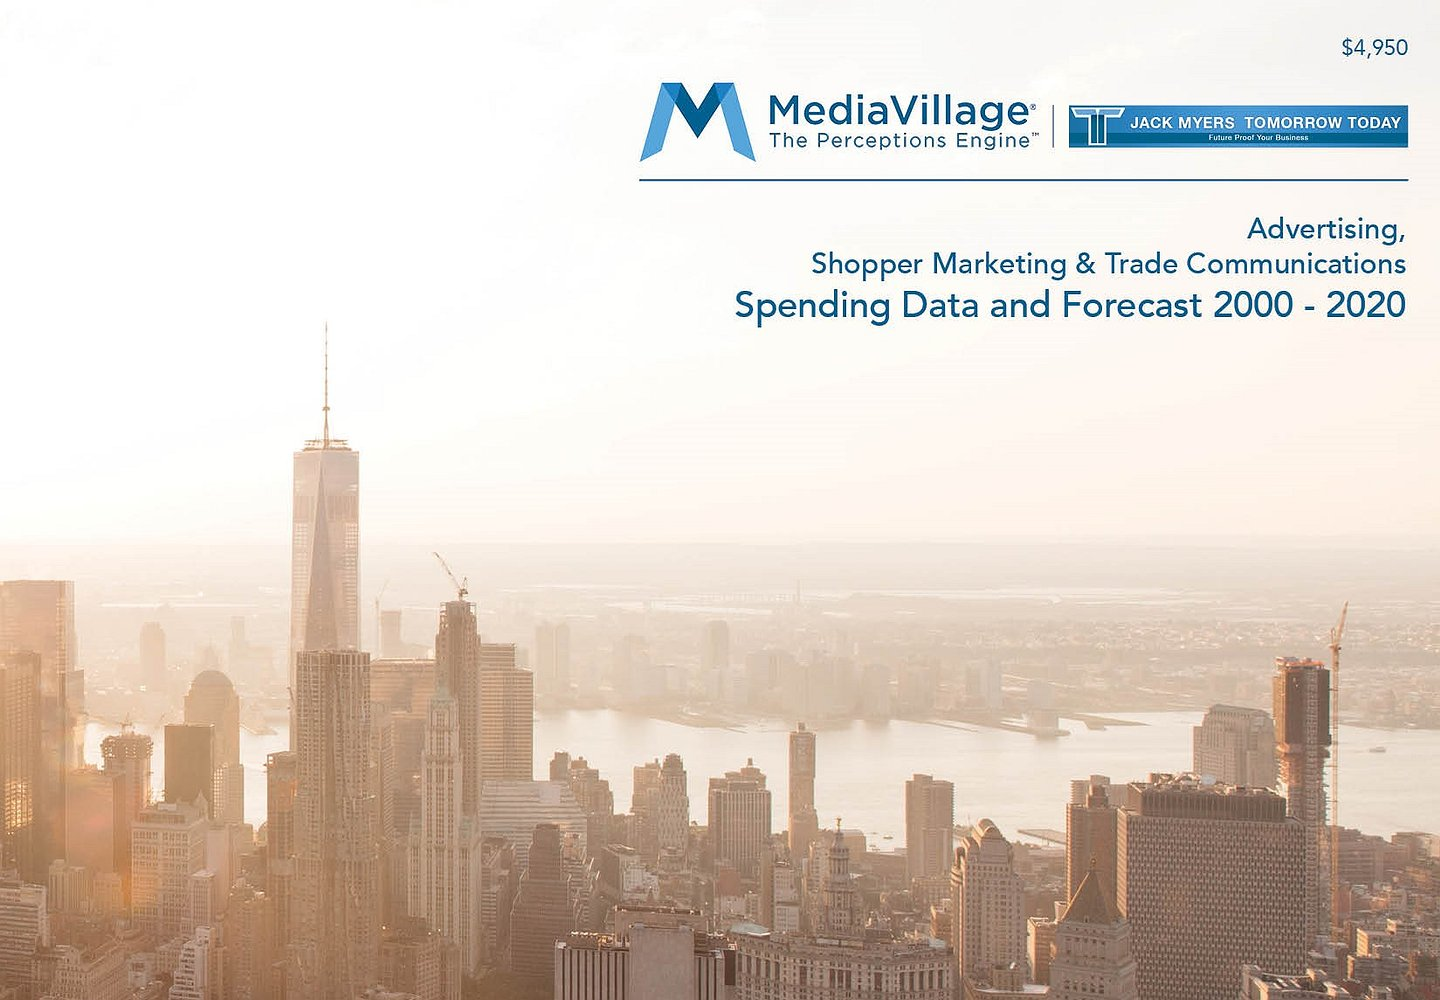 Download Today: Digital Ad Spend Growth Boosts Total U.S. Audio Ad Spend